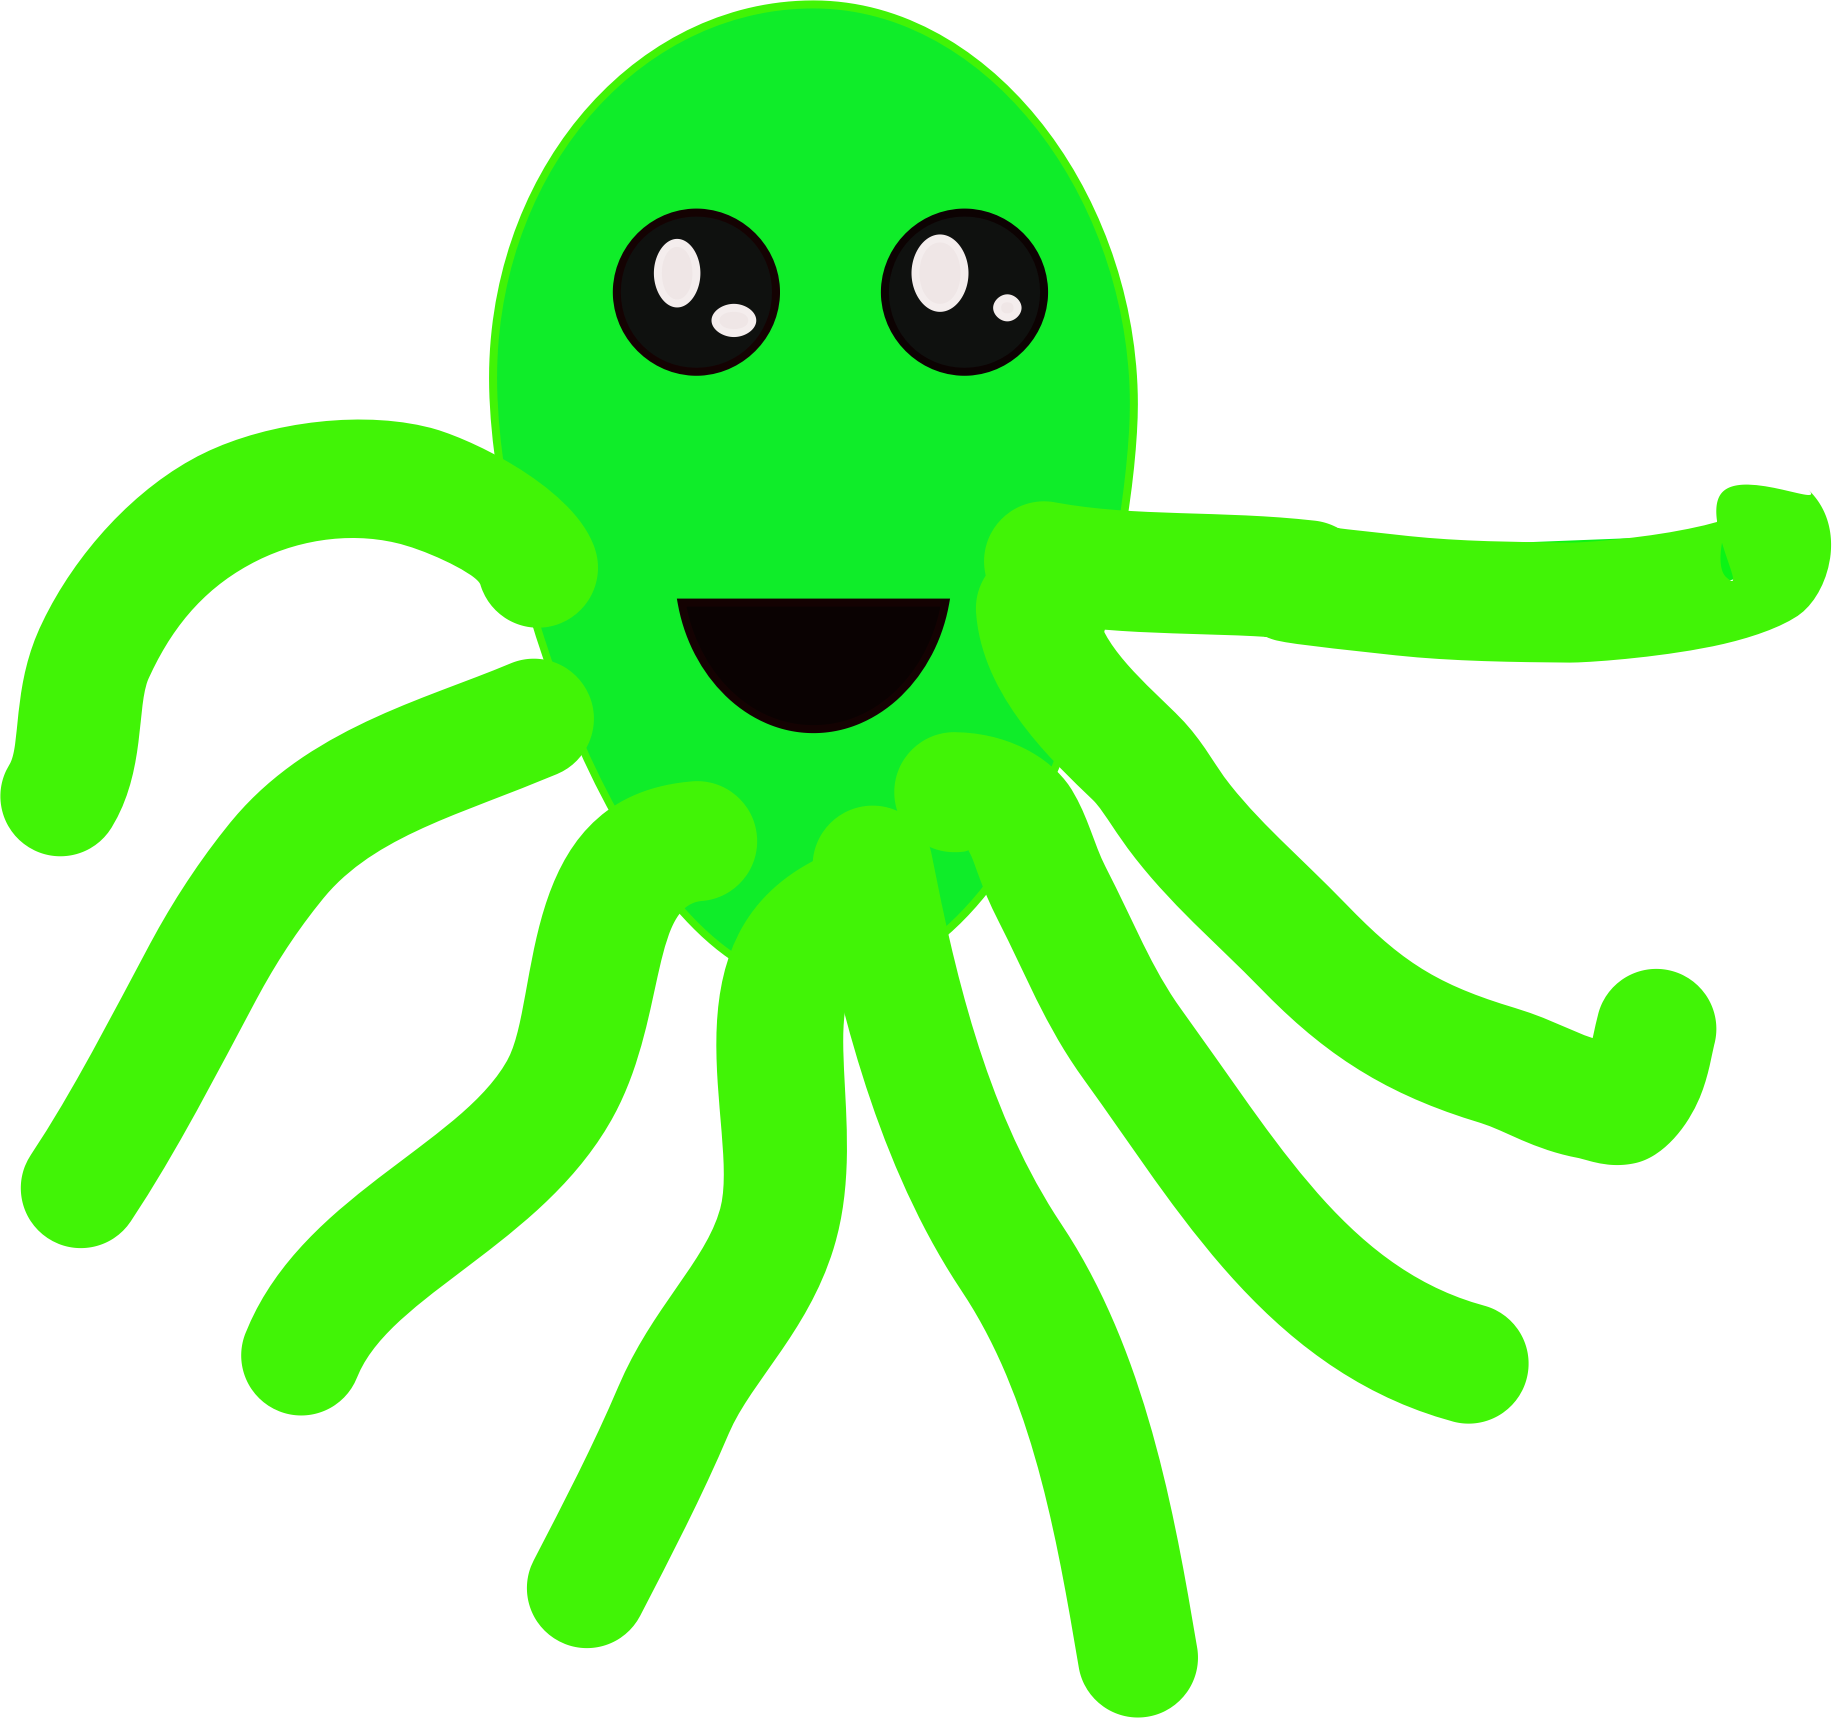 Octopus.svg by marshmallowkid